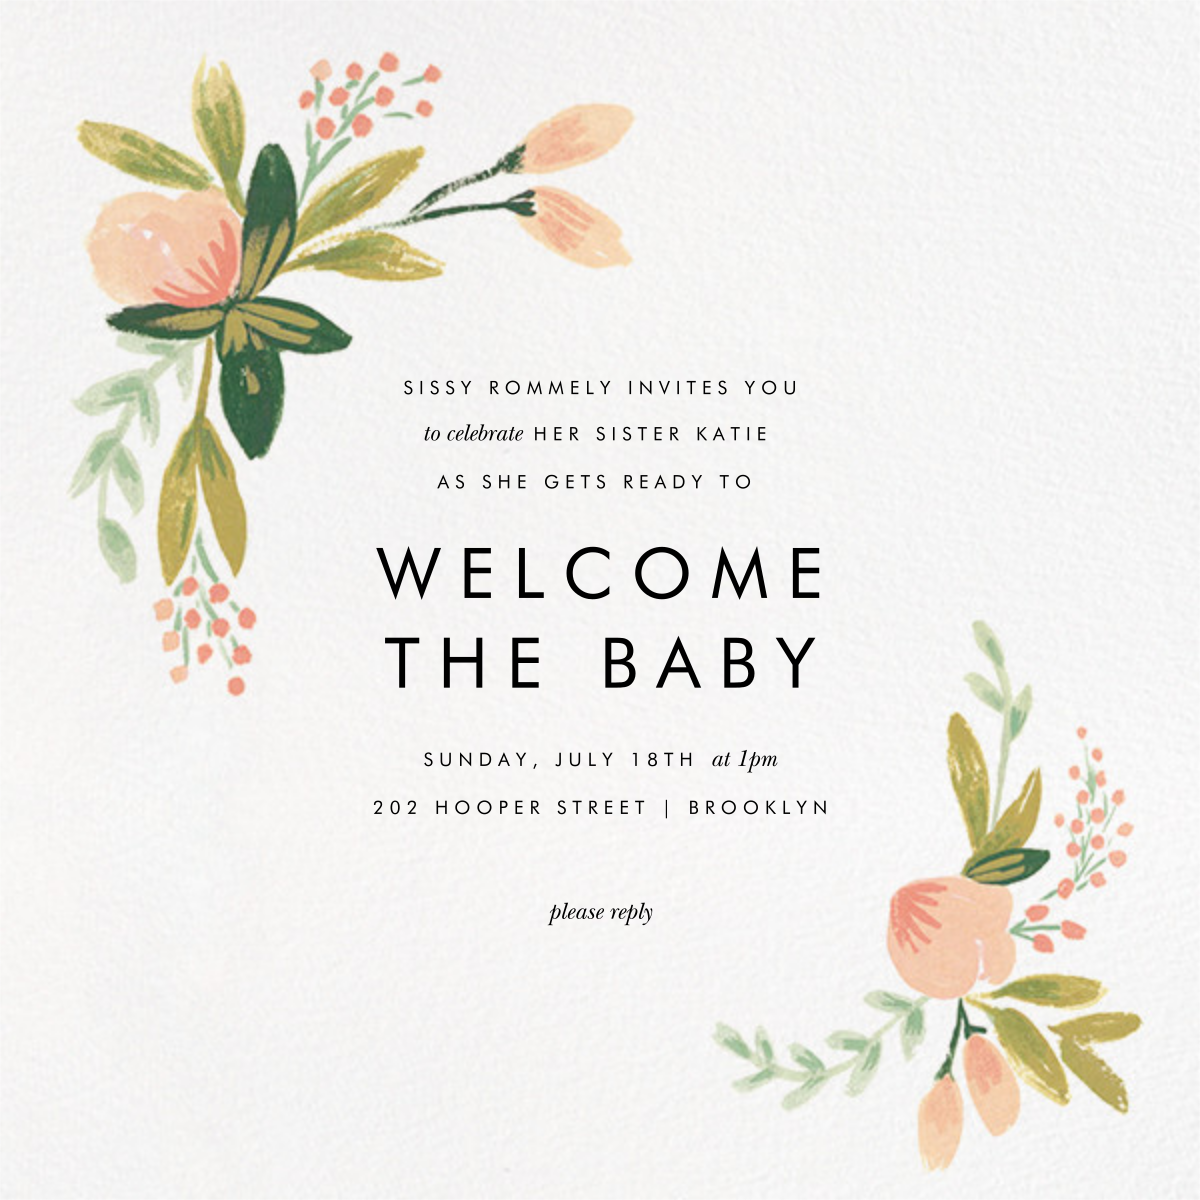 Peach Posies - Rifle Paper Co. - Spring Favorites